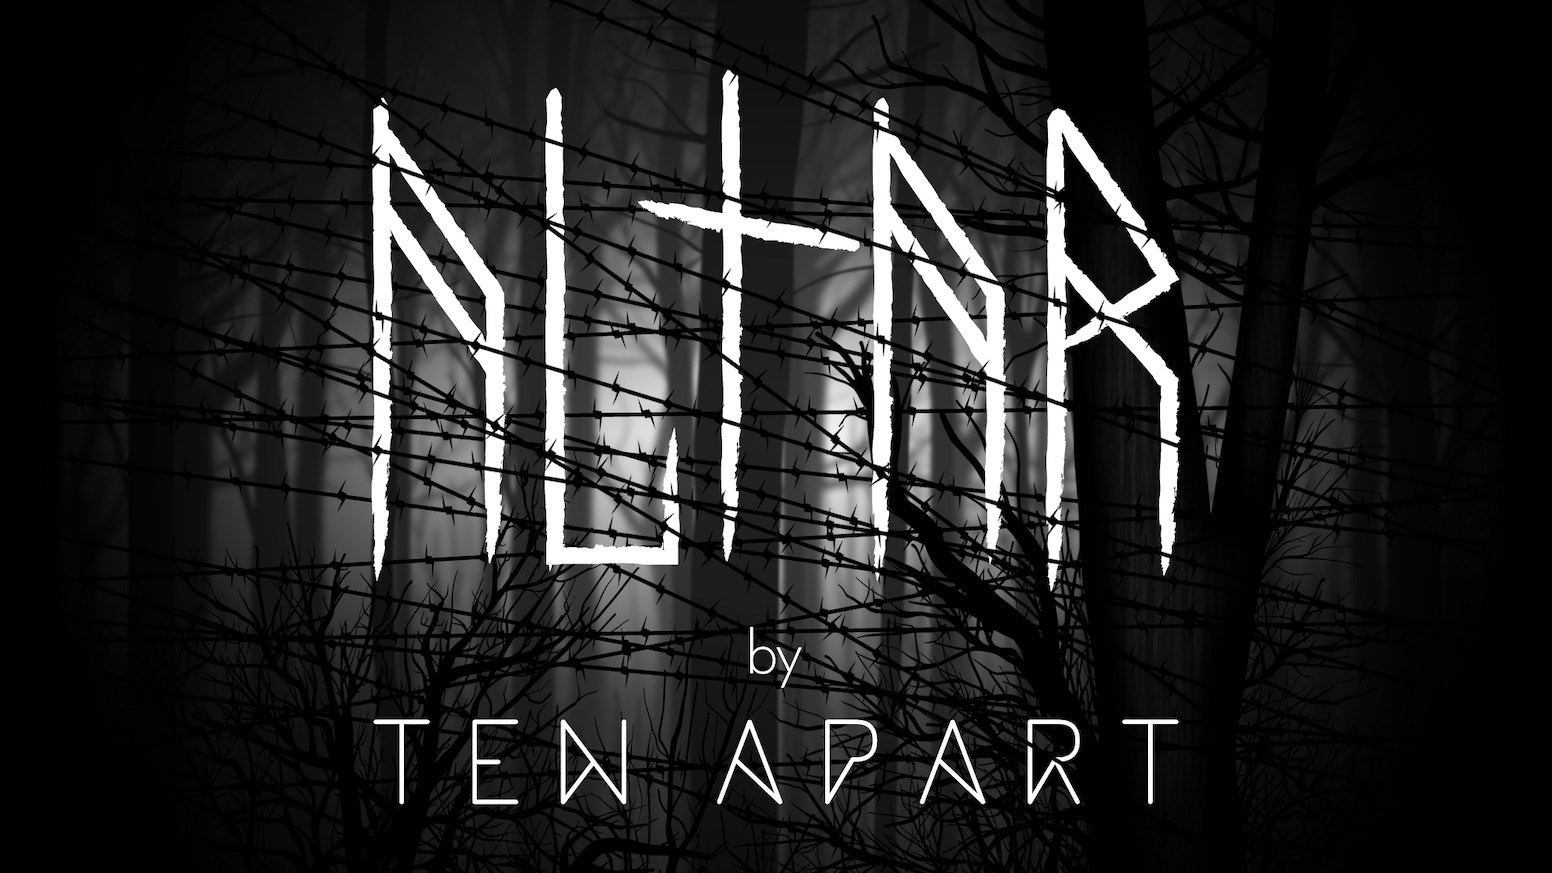 A modern horror adventure set in thick woods filled with dark entities. Altar features clever puzzles, scares, and nods to witchcraft.